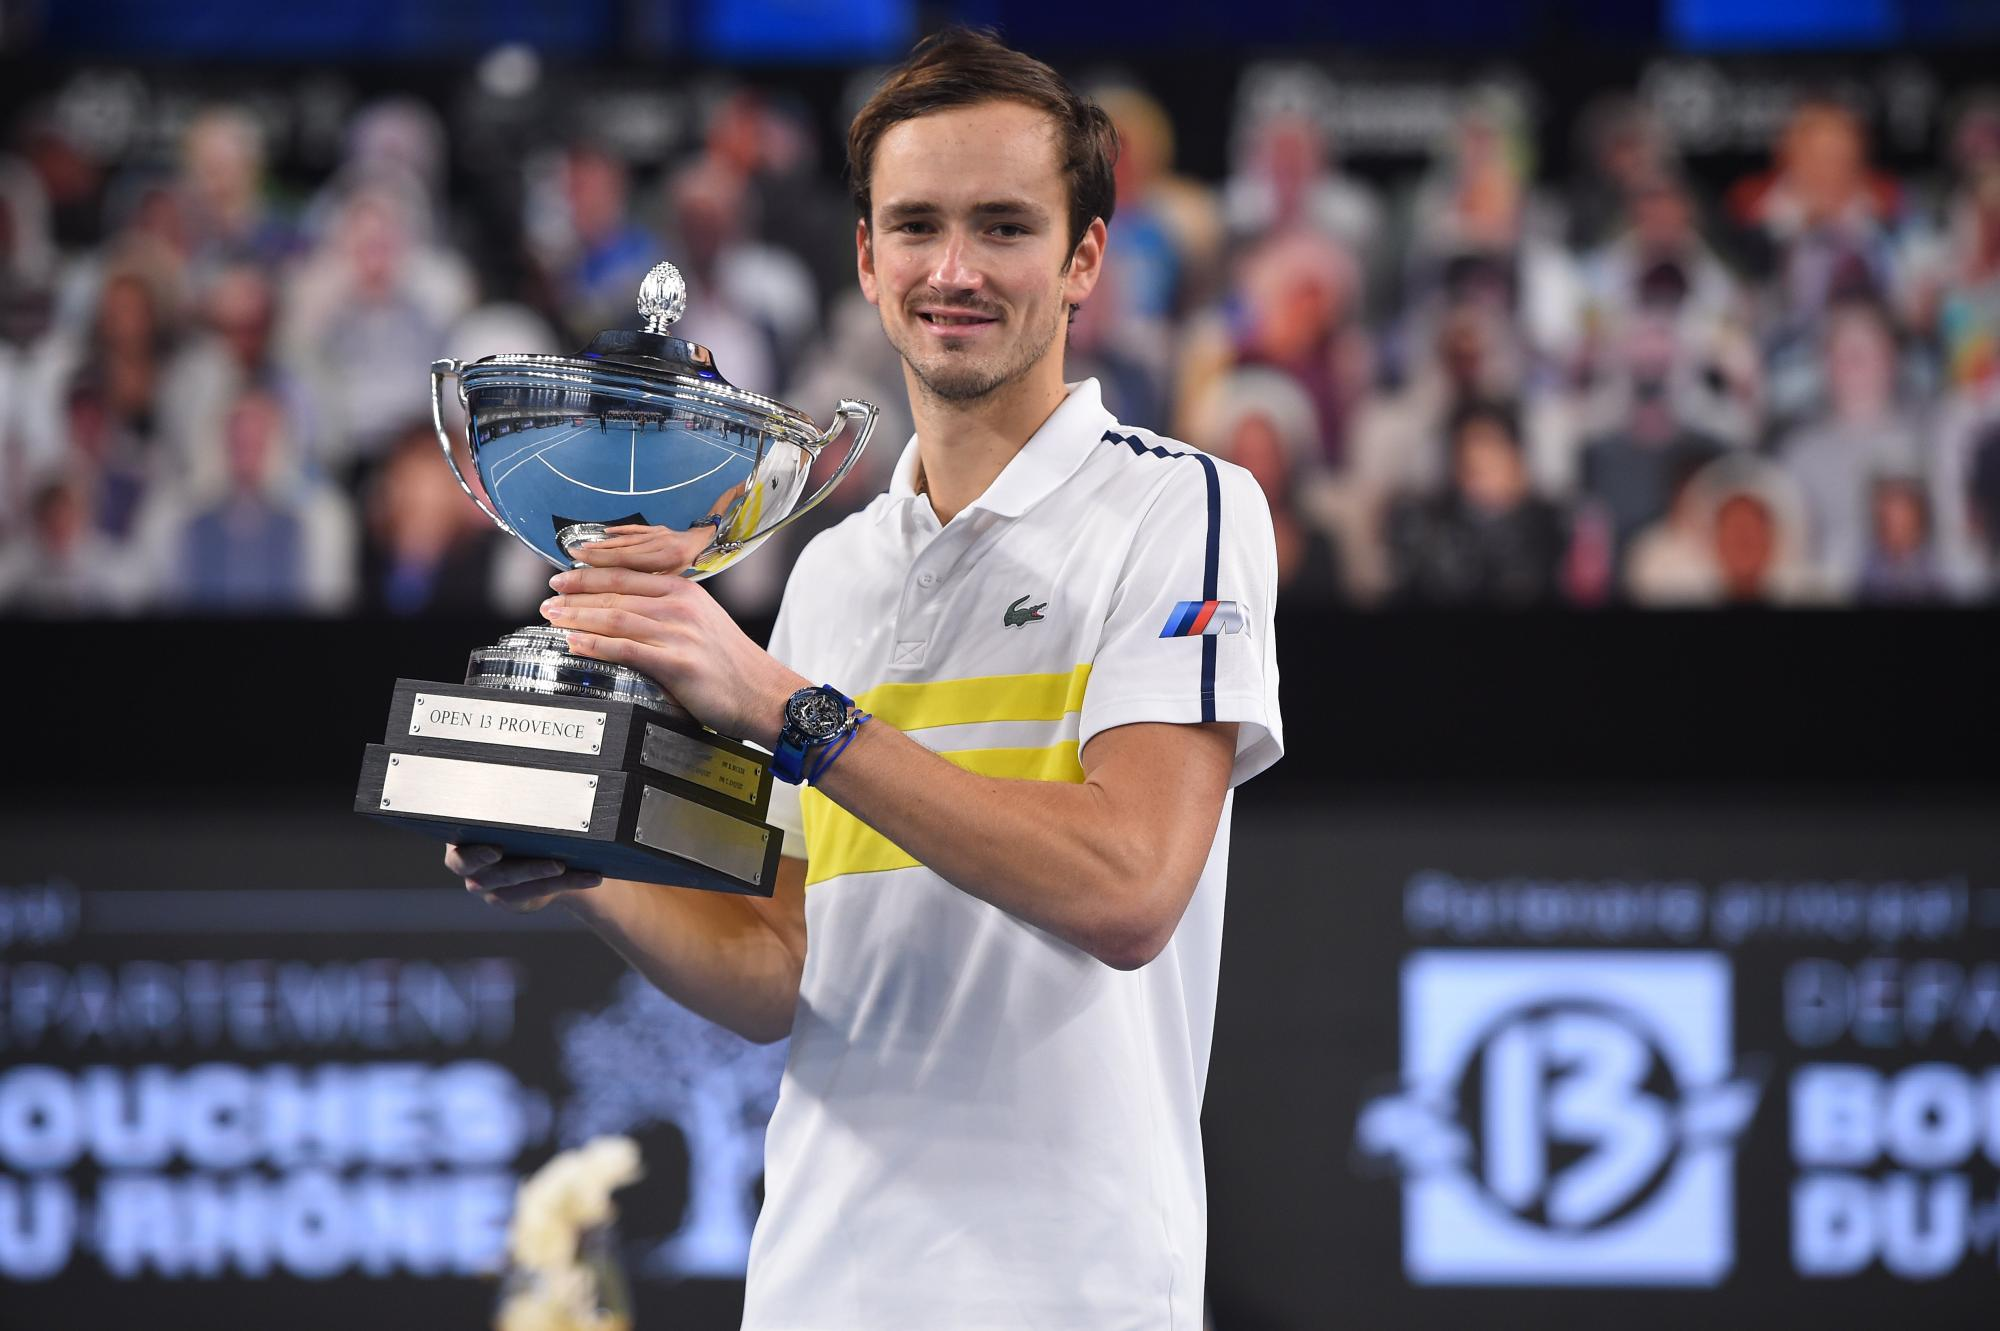 Daniil Medvedev captures the title at the Open 13 Provence